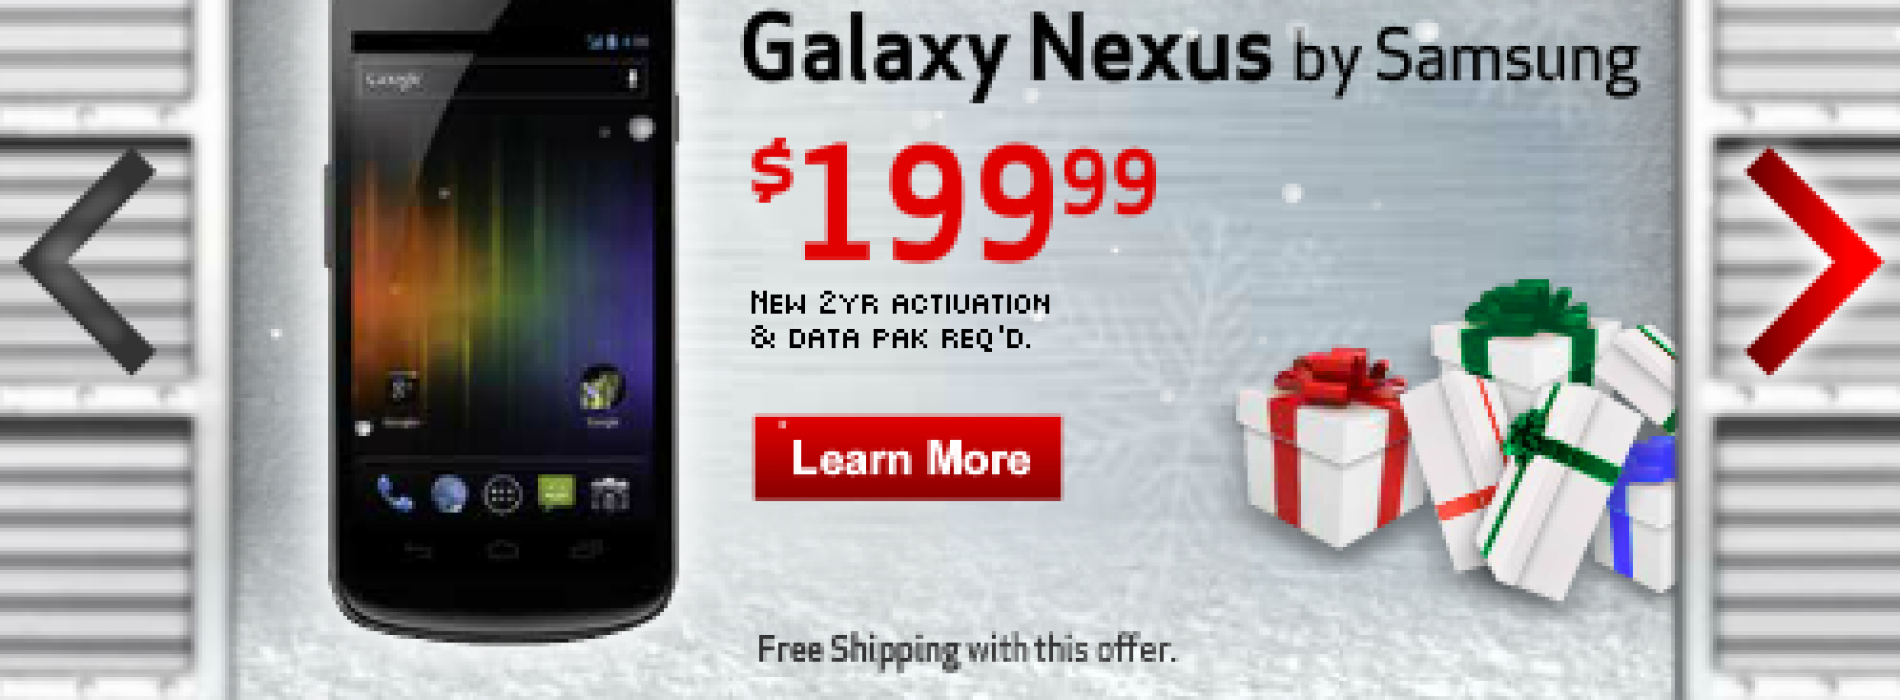 Verizon Galaxy Nexus shows up in online ads for $199; you still can't buy one